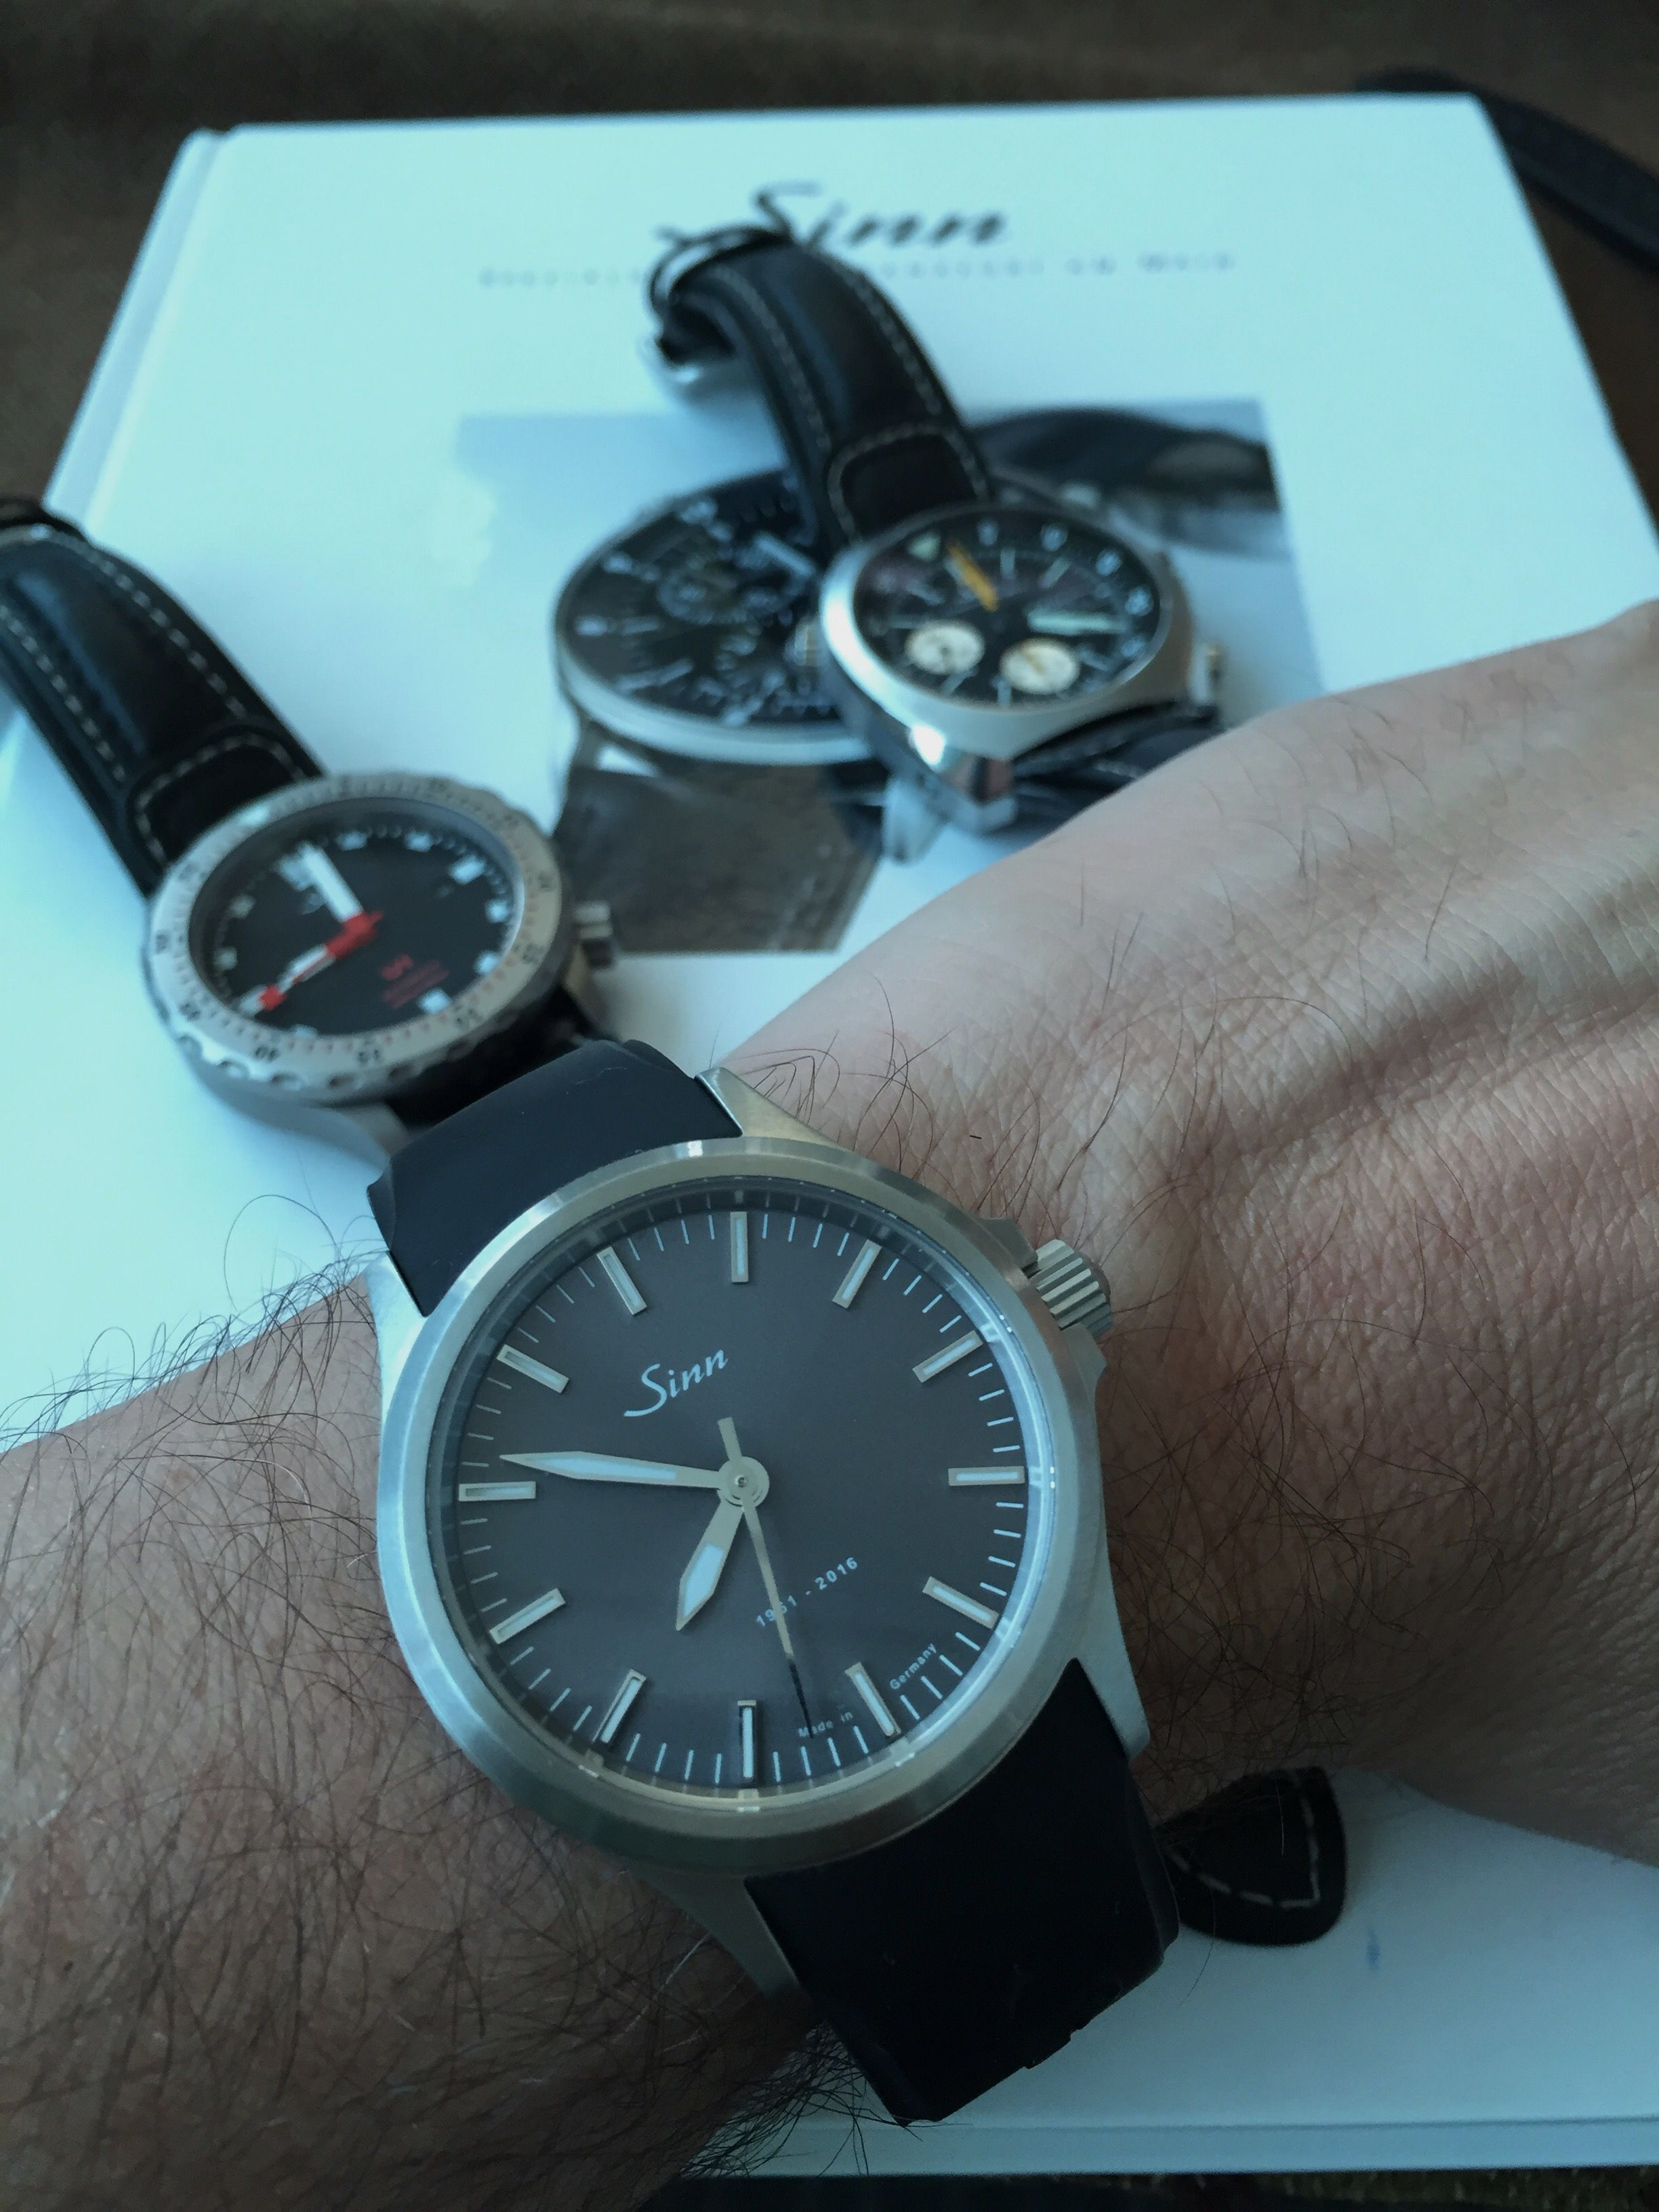 Tim popped in to collect his new sinn spezialuhren 555